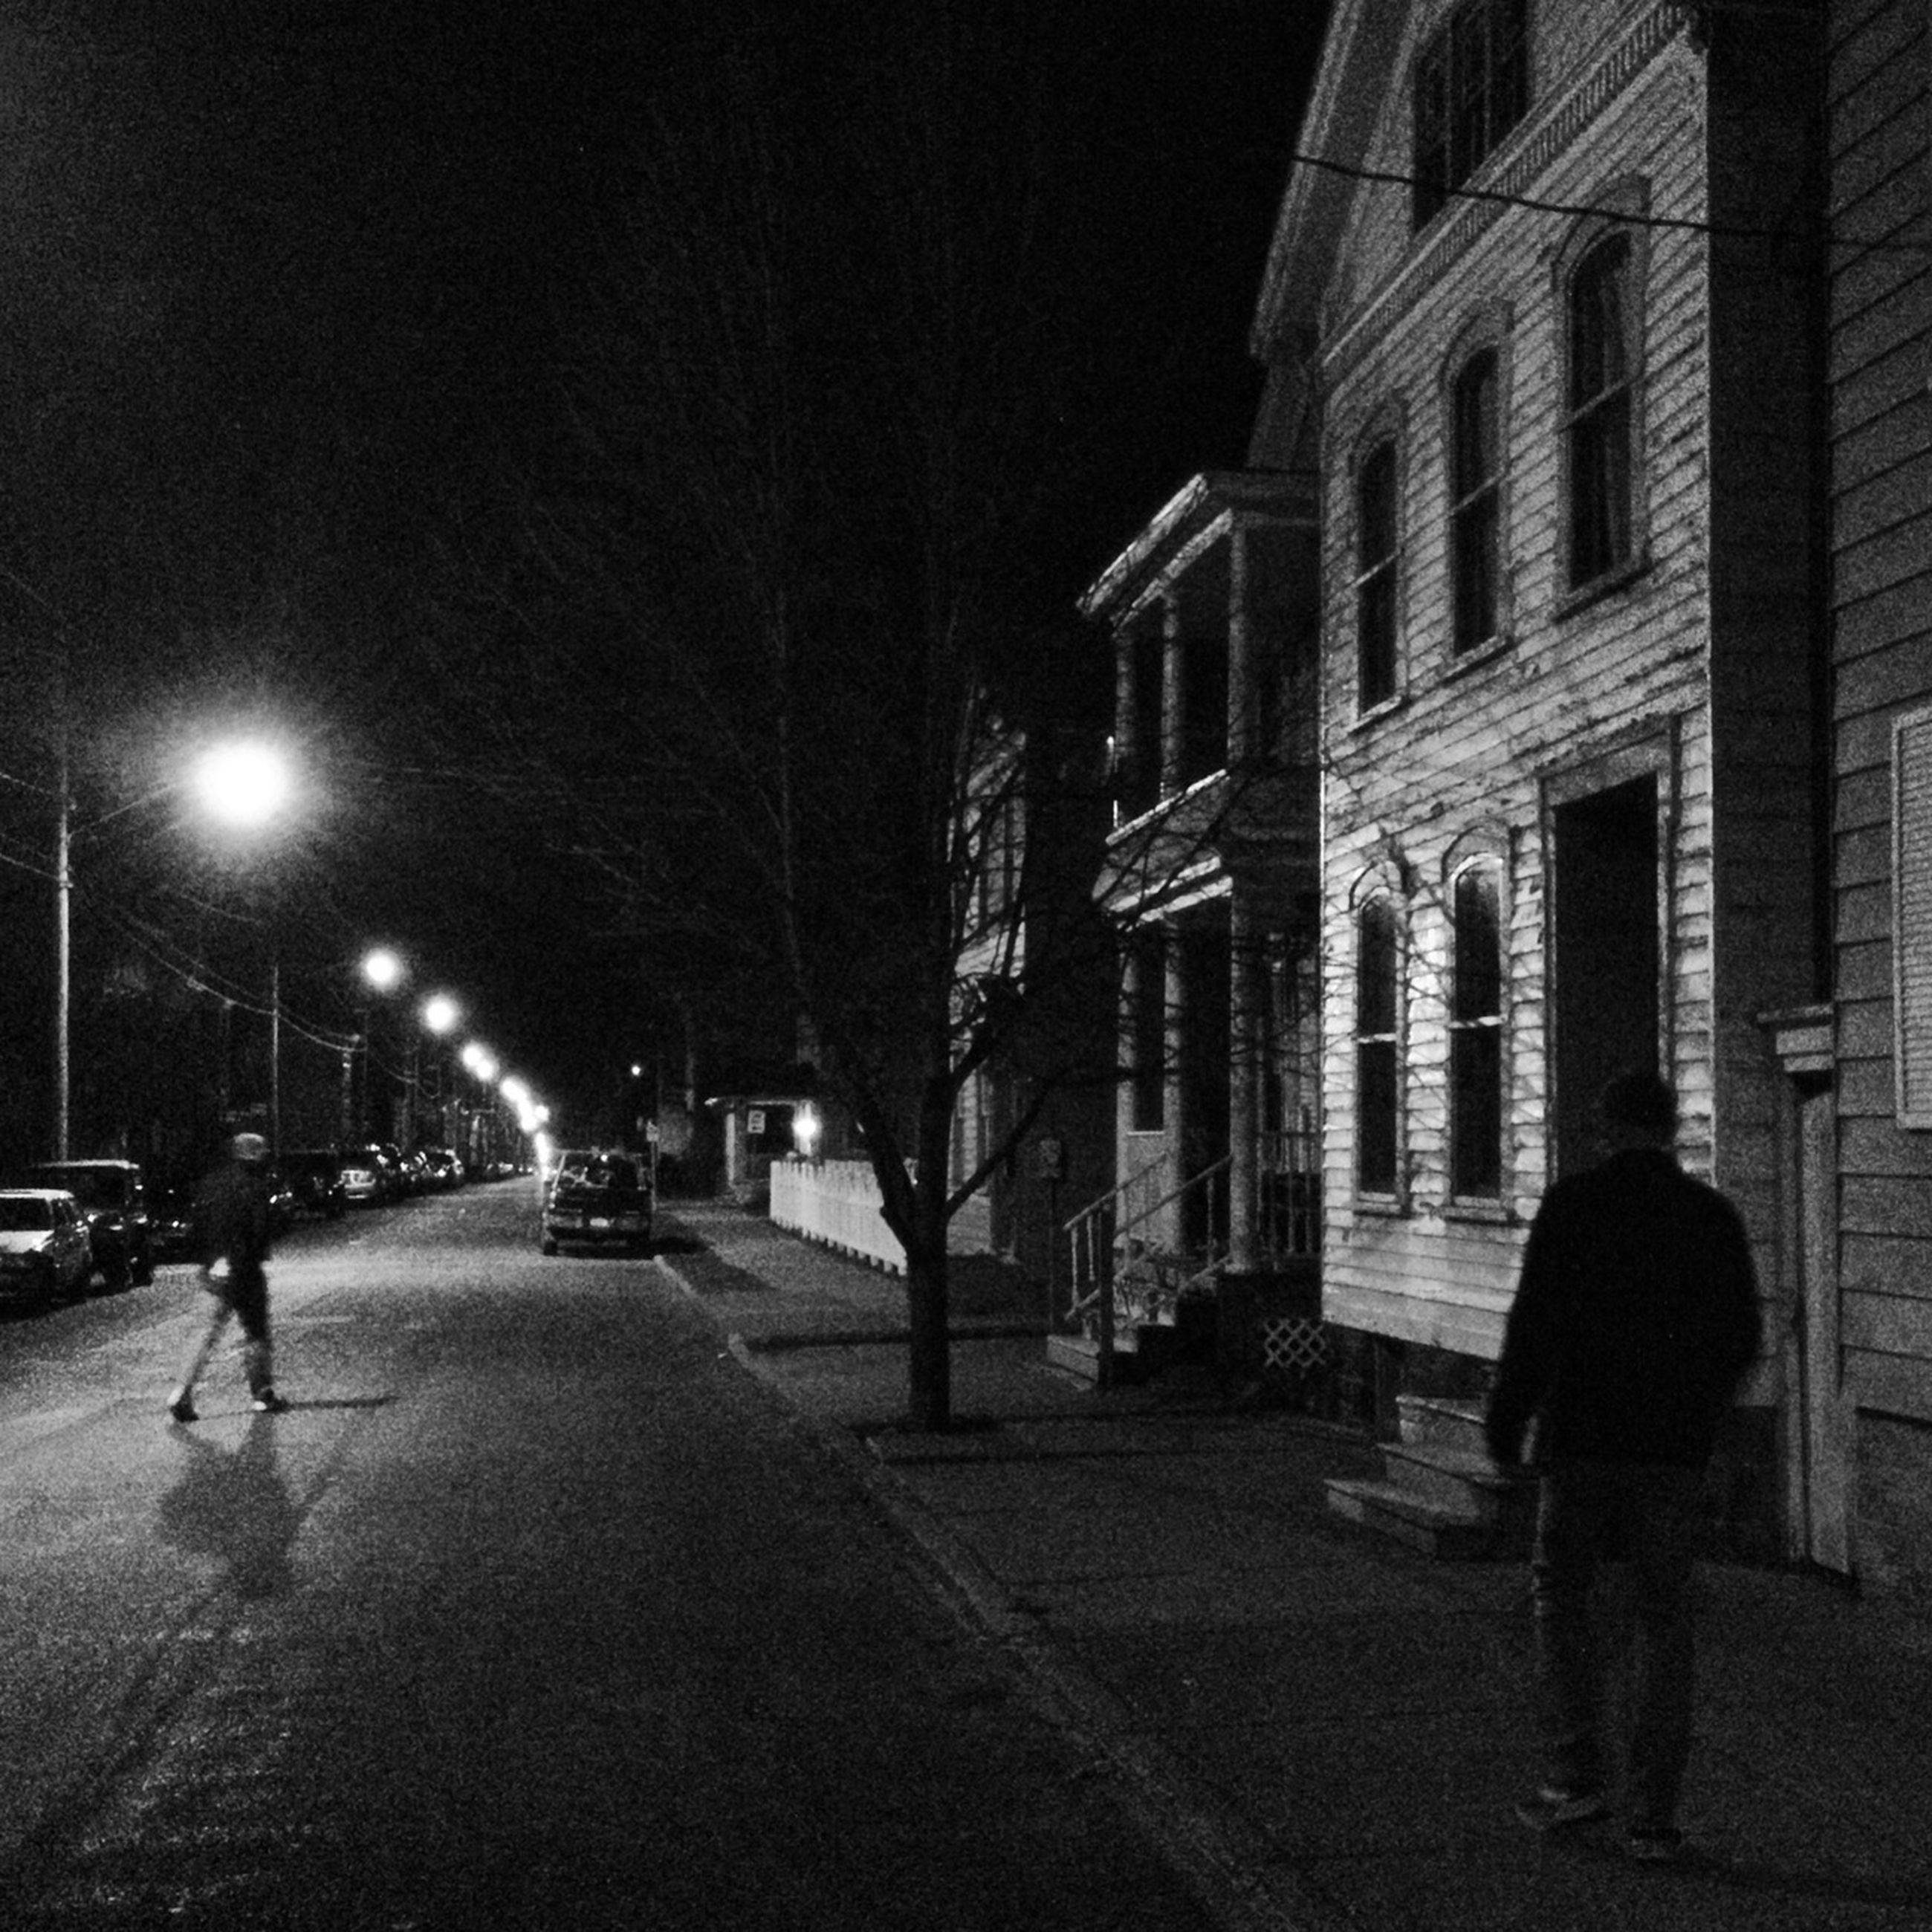 building exterior, architecture, built structure, street, night, walking, illuminated, street light, the way forward, city, men, building, full length, lifestyles, city life, unrecognizable person, road, incidental people